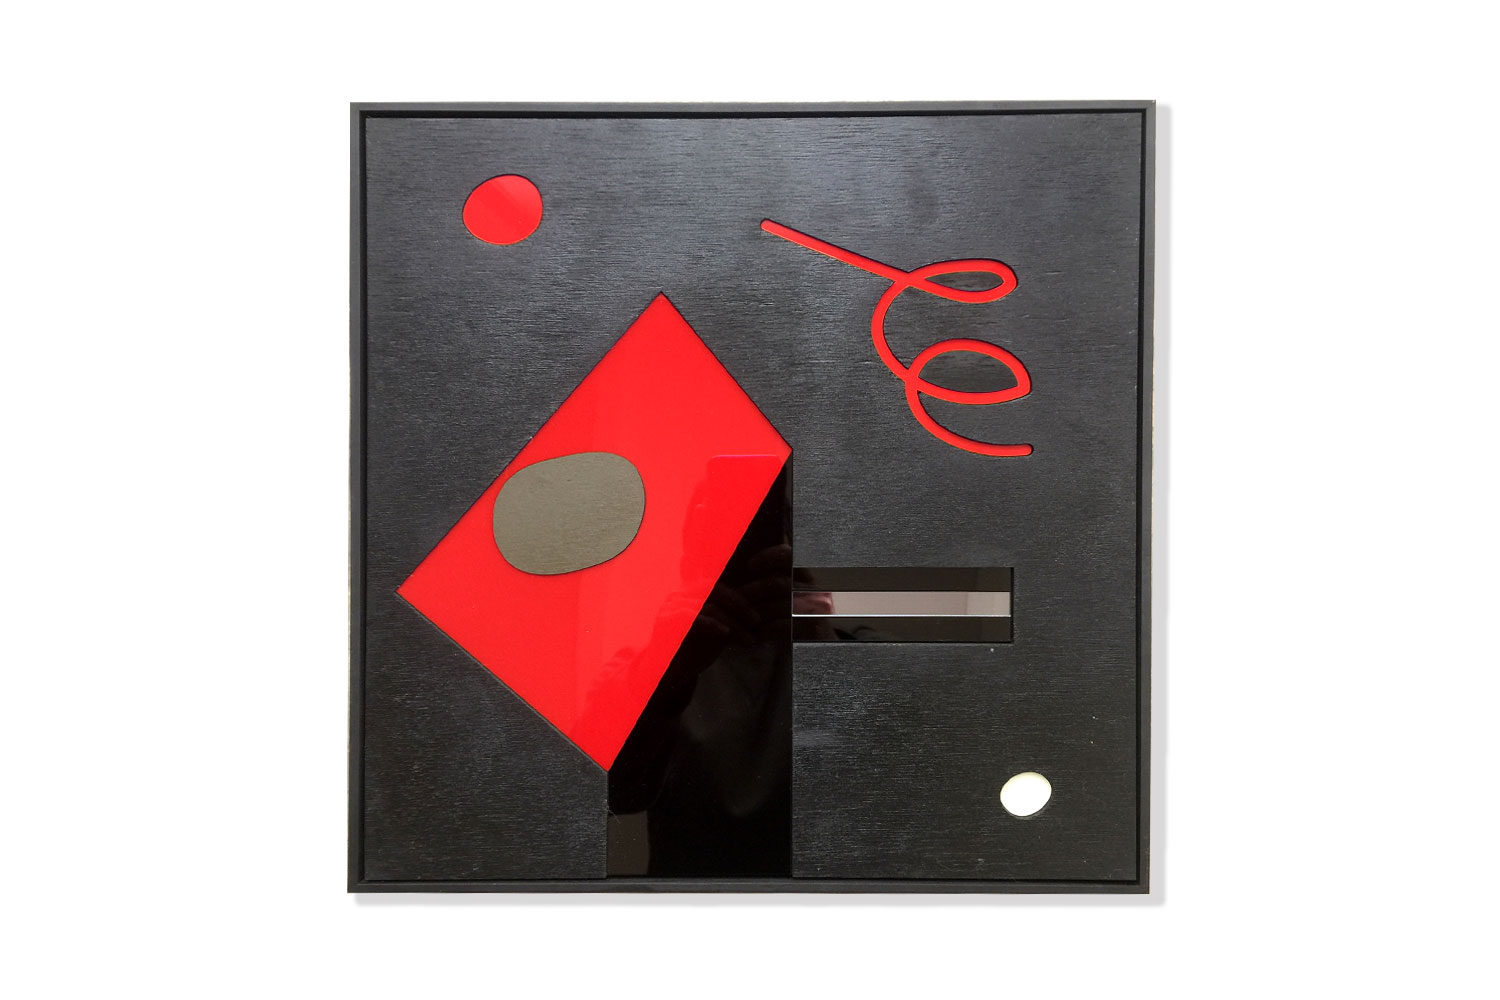 Burned wood - polymethyl - aluminum - Acrylic paint - mirror - 50 X 50 cm